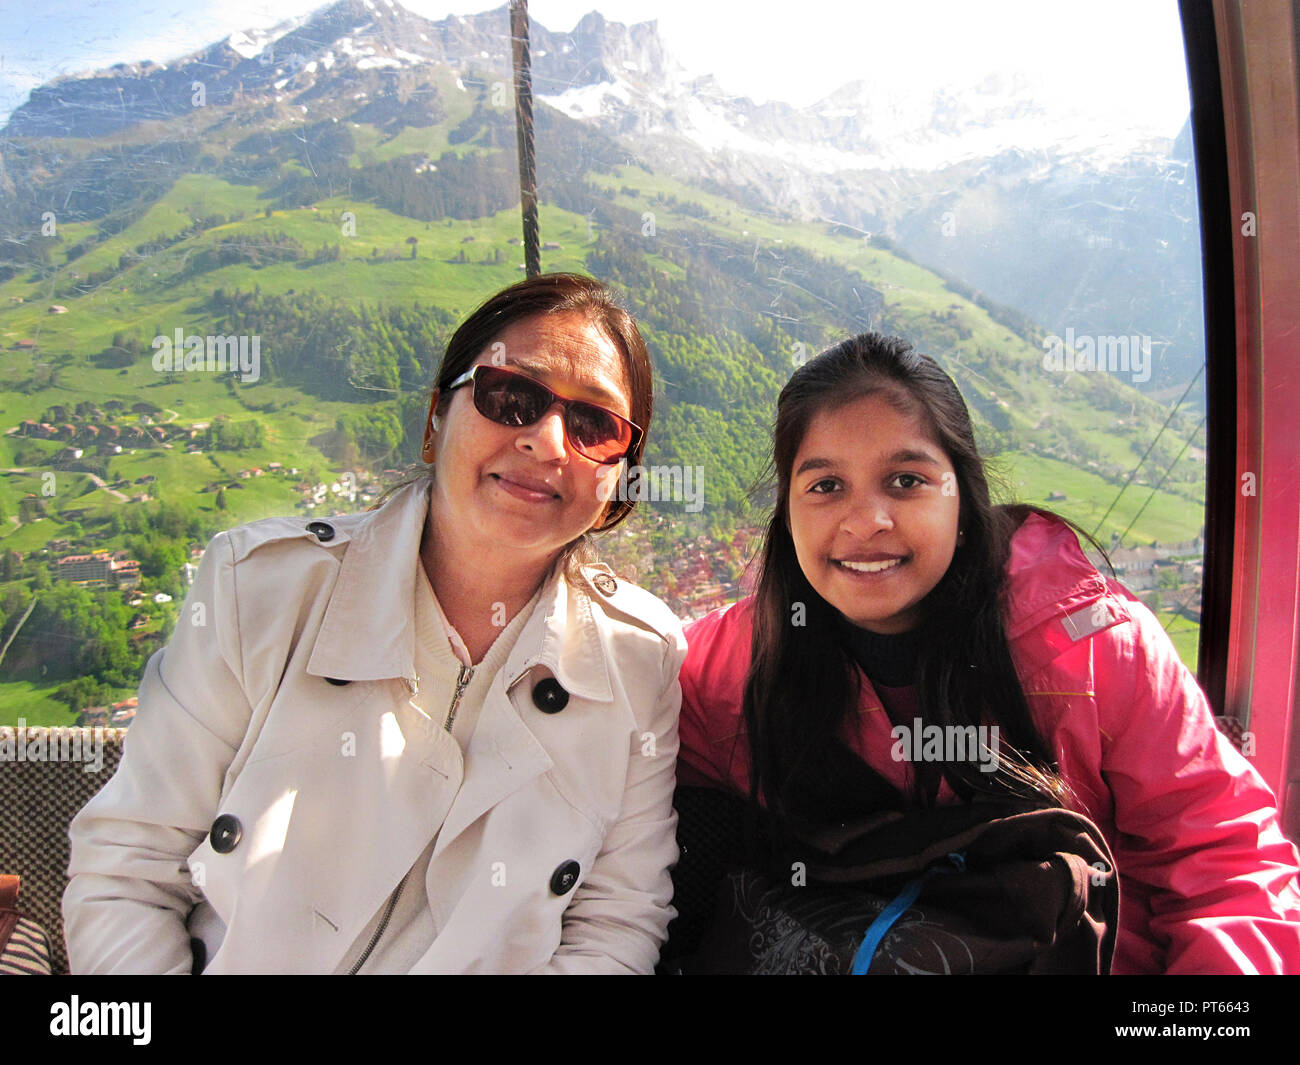 MOTHER AND DAUGHTER IN CABLE CAR TO MOUNT TITLIS, SWITZERLAND - Stock Photo